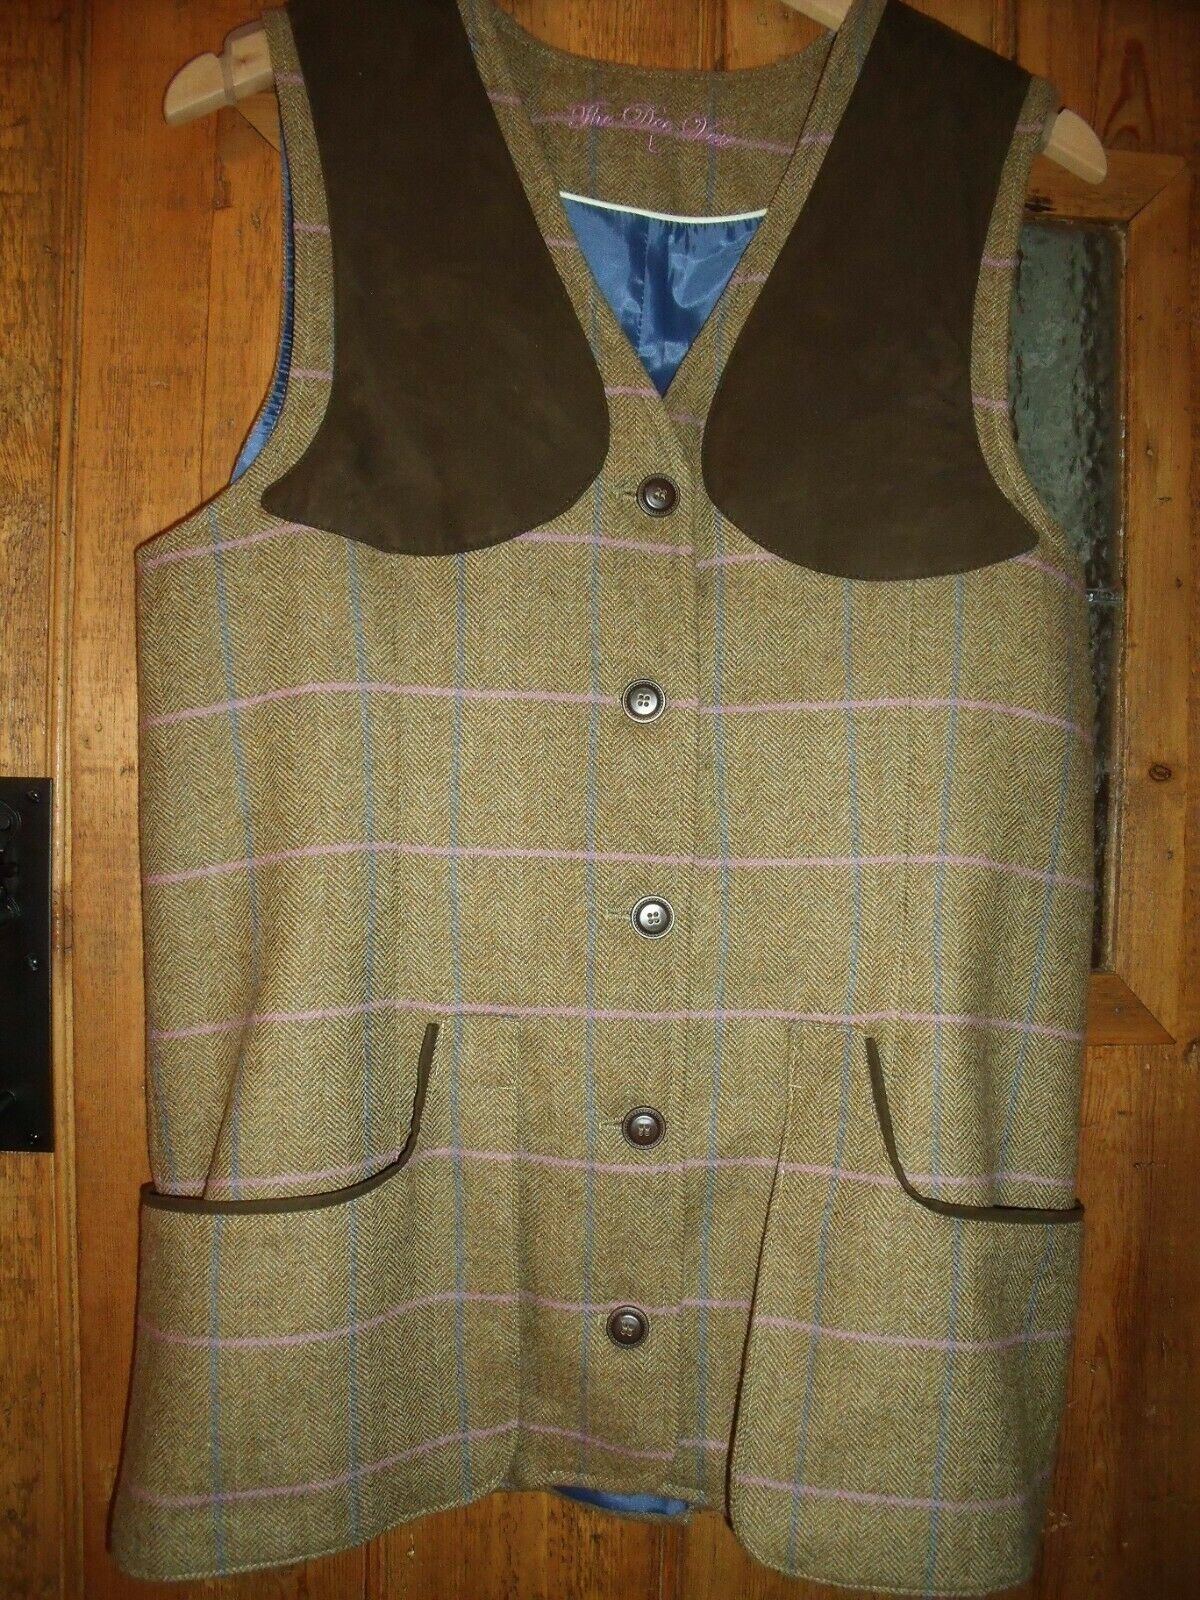 Lakesen Ladies Thrie Estaits Tweed Shooting Hunting Waistcoat size L